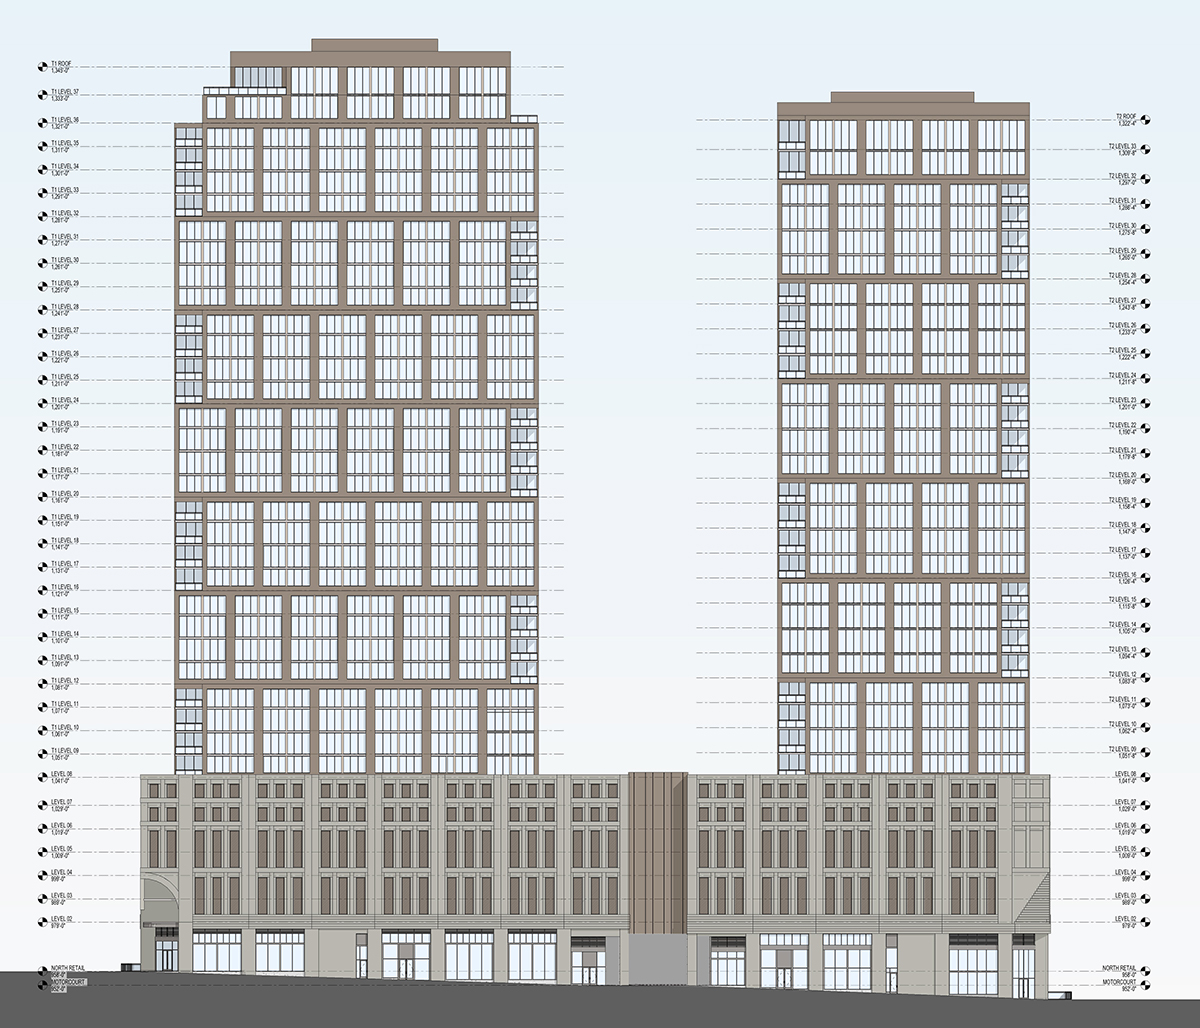 A sketch of the proposed 1081 Juniper Street project showing elevation of the towers along the east side of the street.